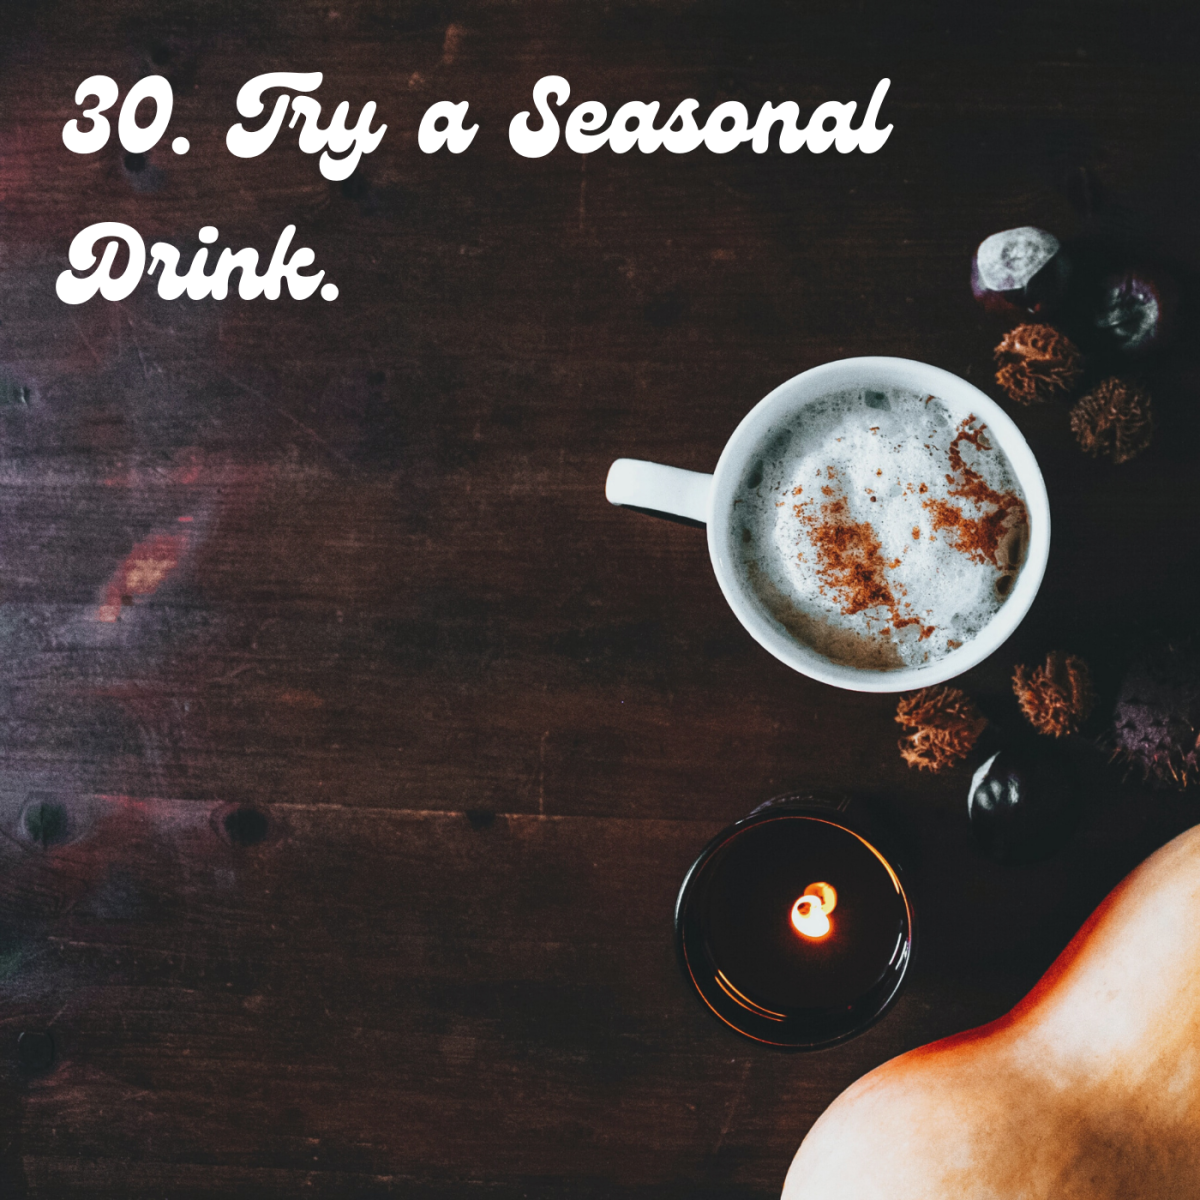 30. Try a seasonal drink.